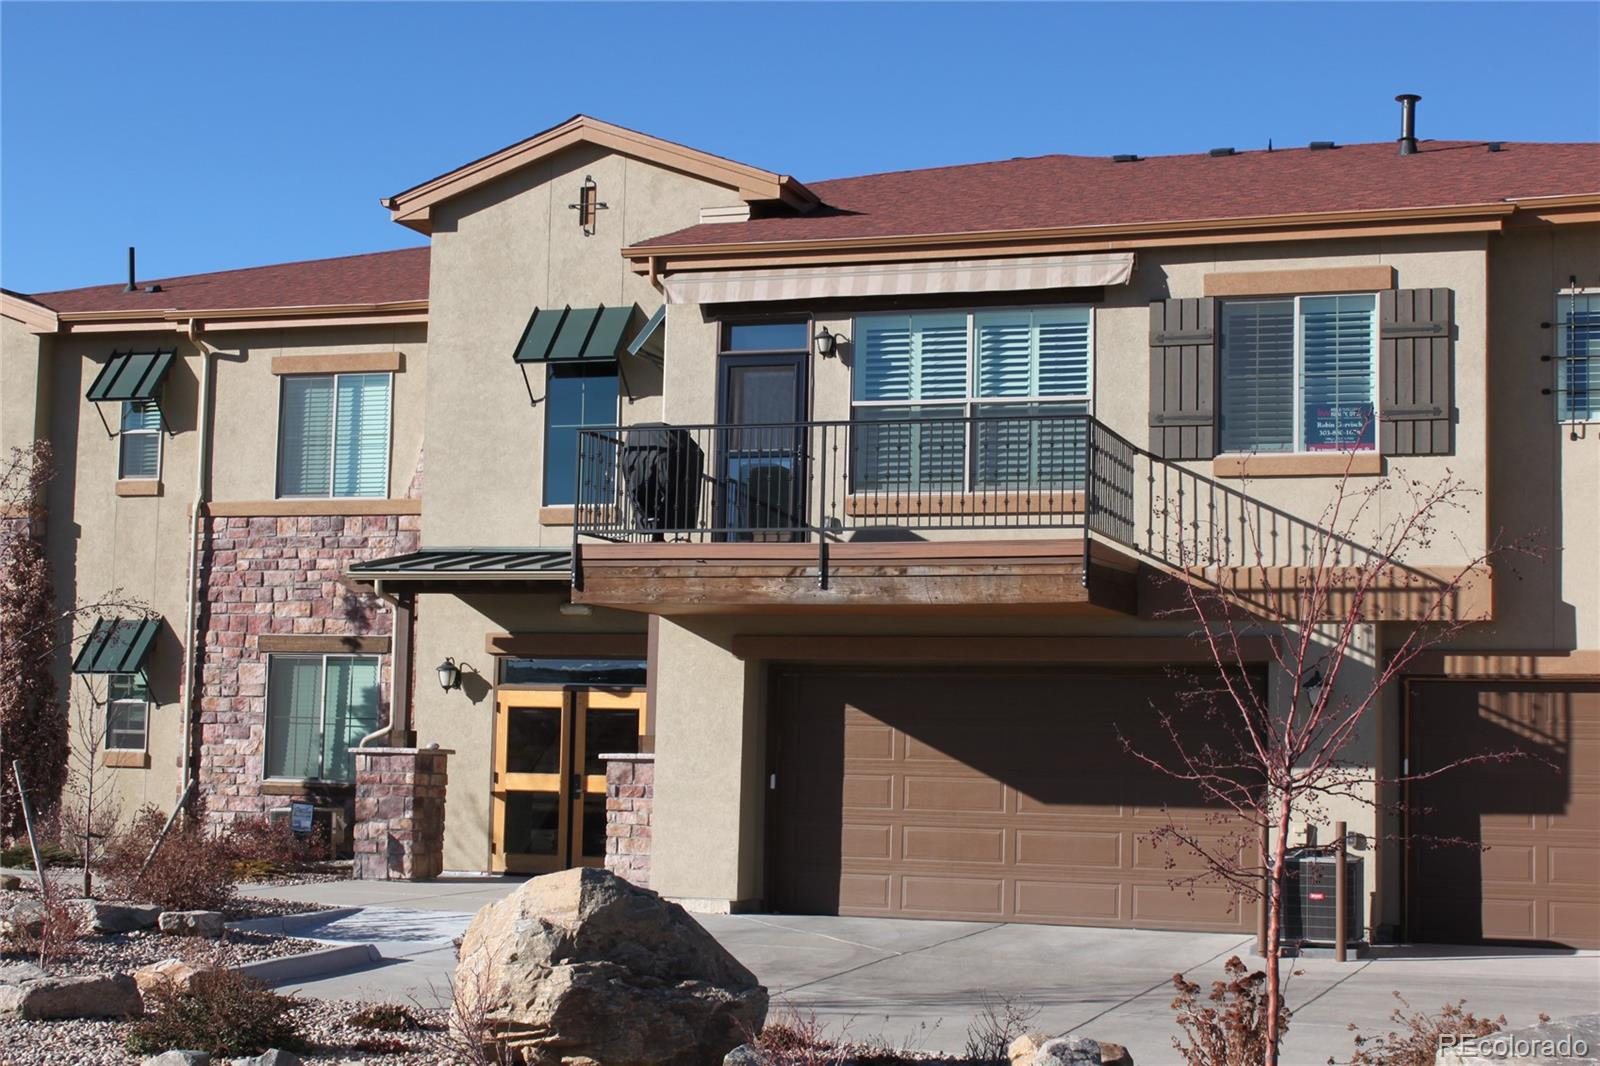 Condos For Sale in Highlands Ranch